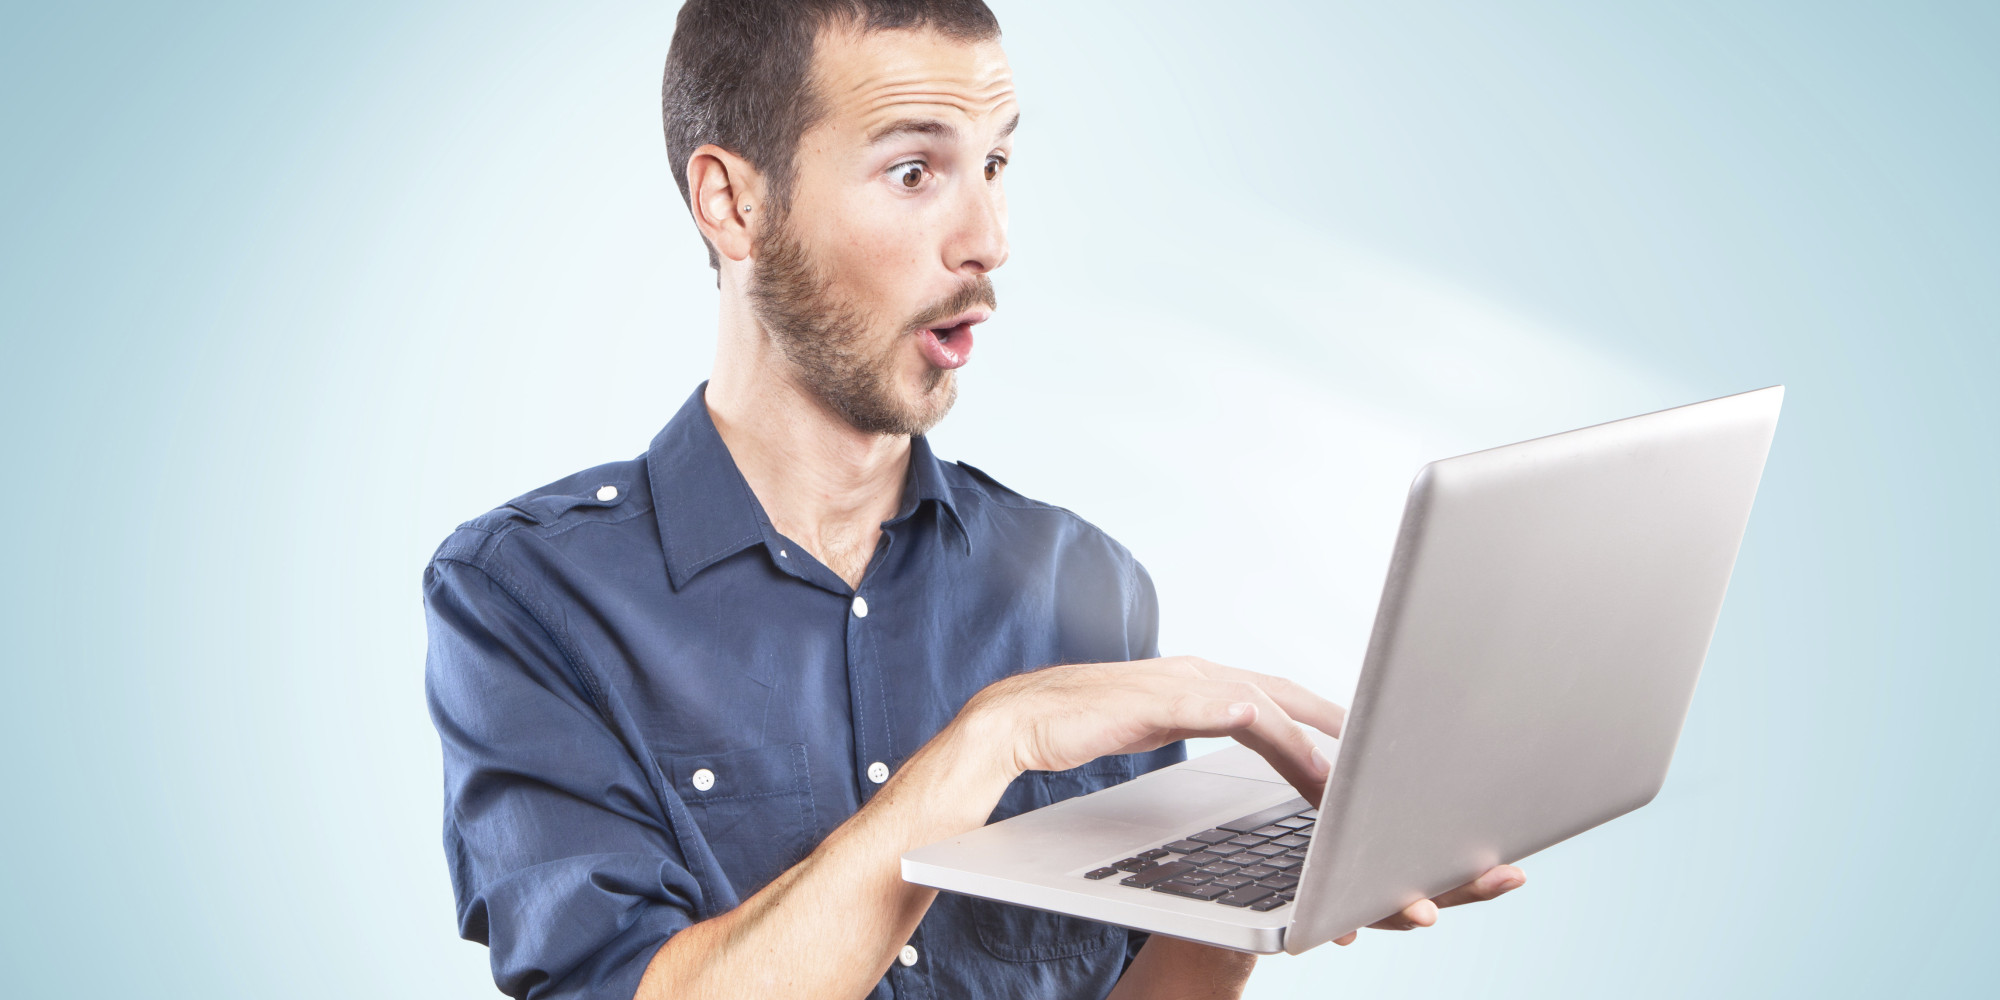 Young man surprised holding a laptop